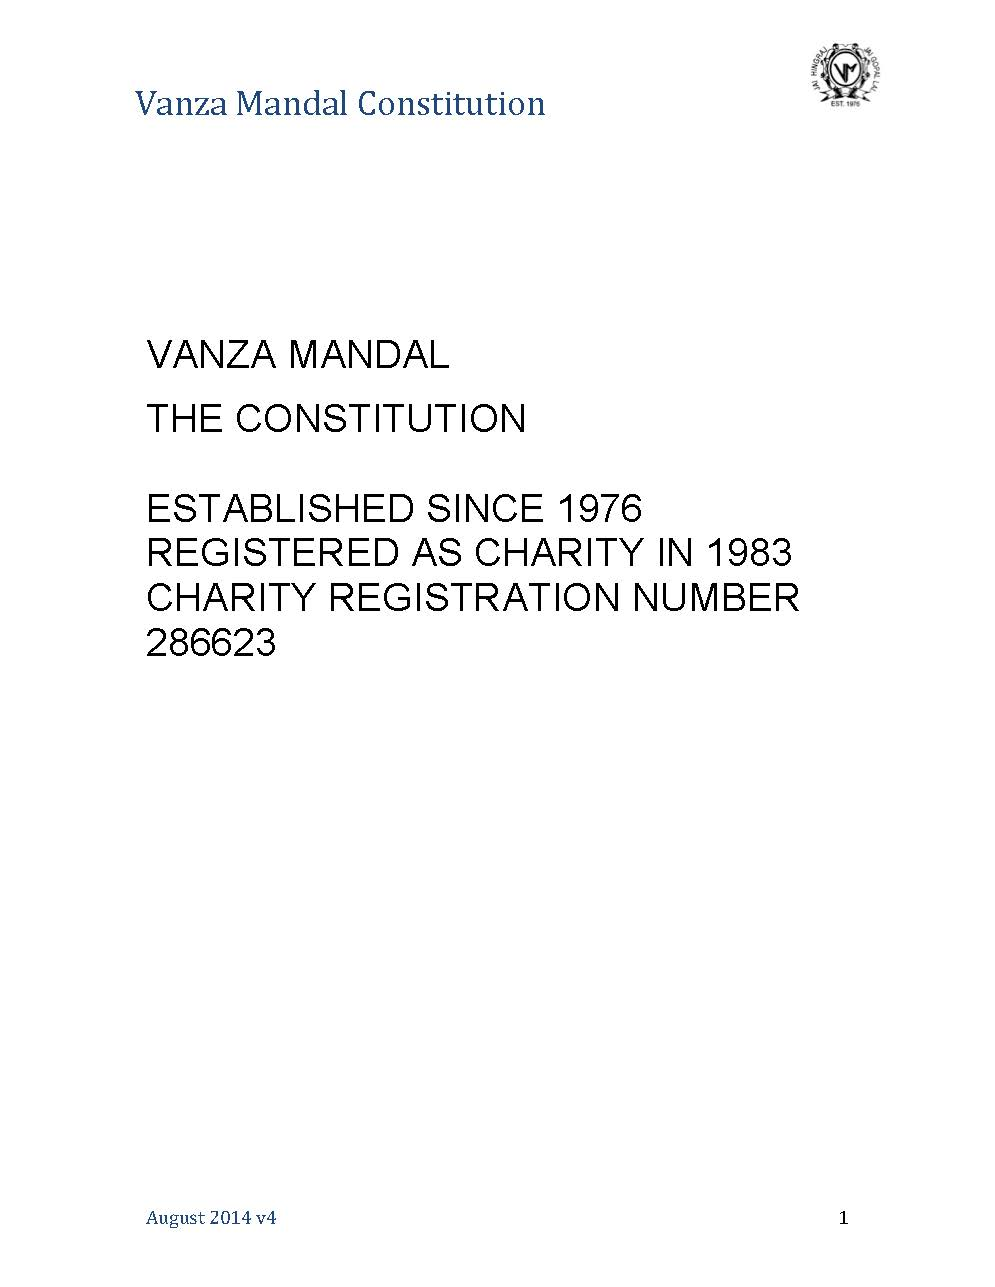 Vanza Mandal Constitution Version 4 (2014)_Page_01